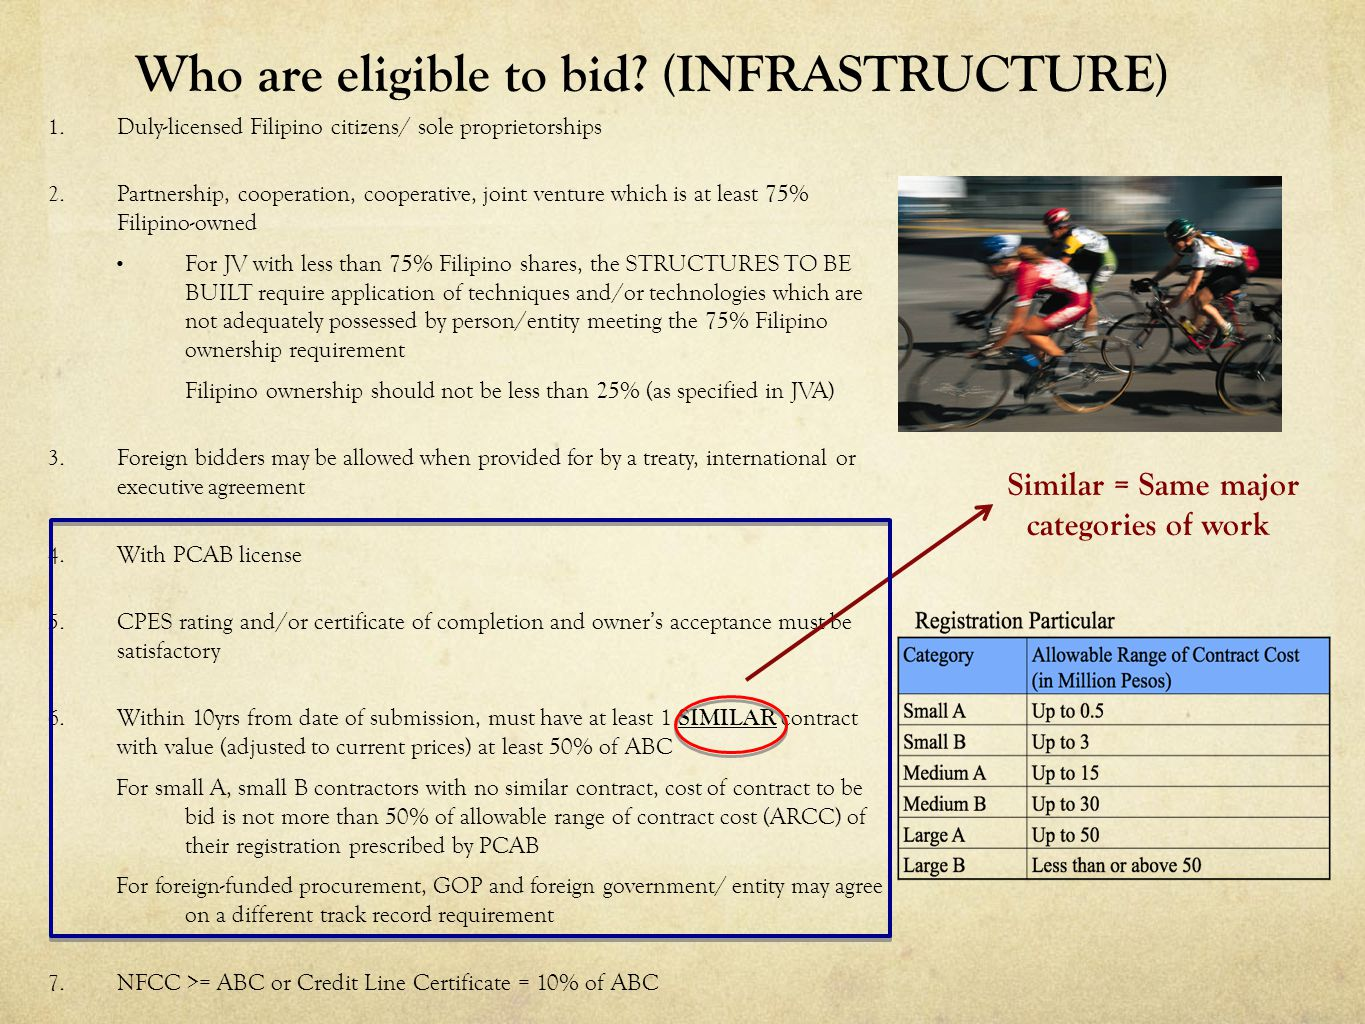 Who are eligible to bid (INFRASTRUCTURE)